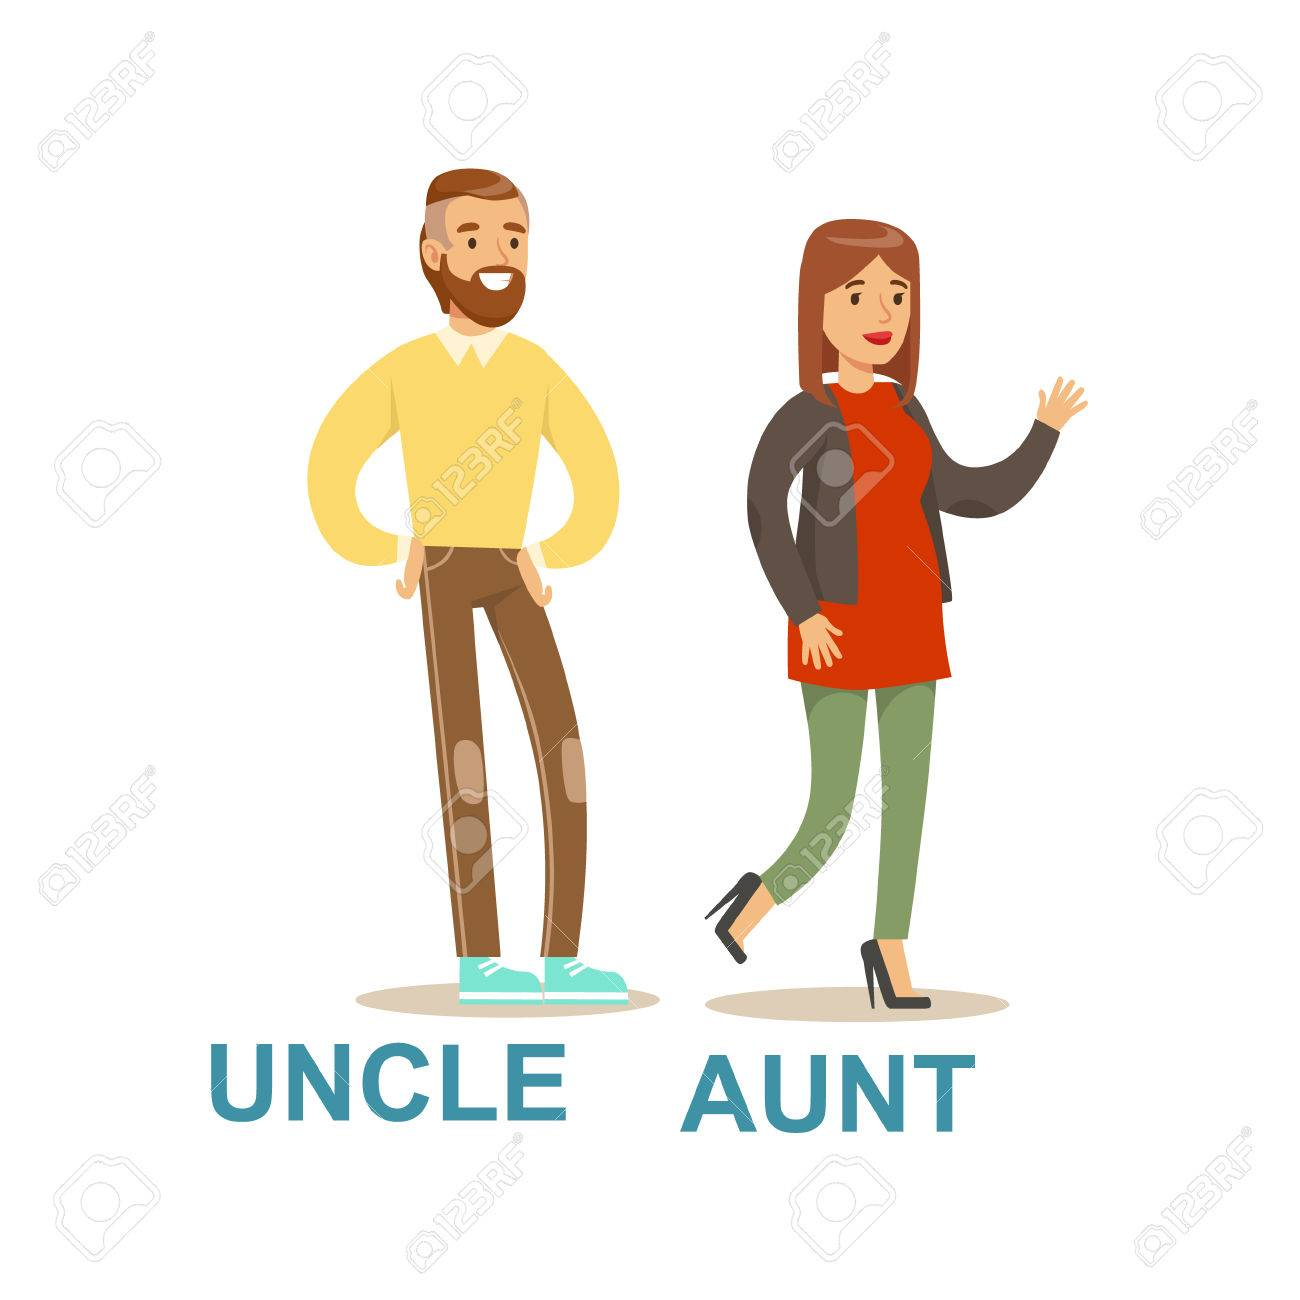 Uncle And Aunt, Happy Family Having Good Time Together Illustration.